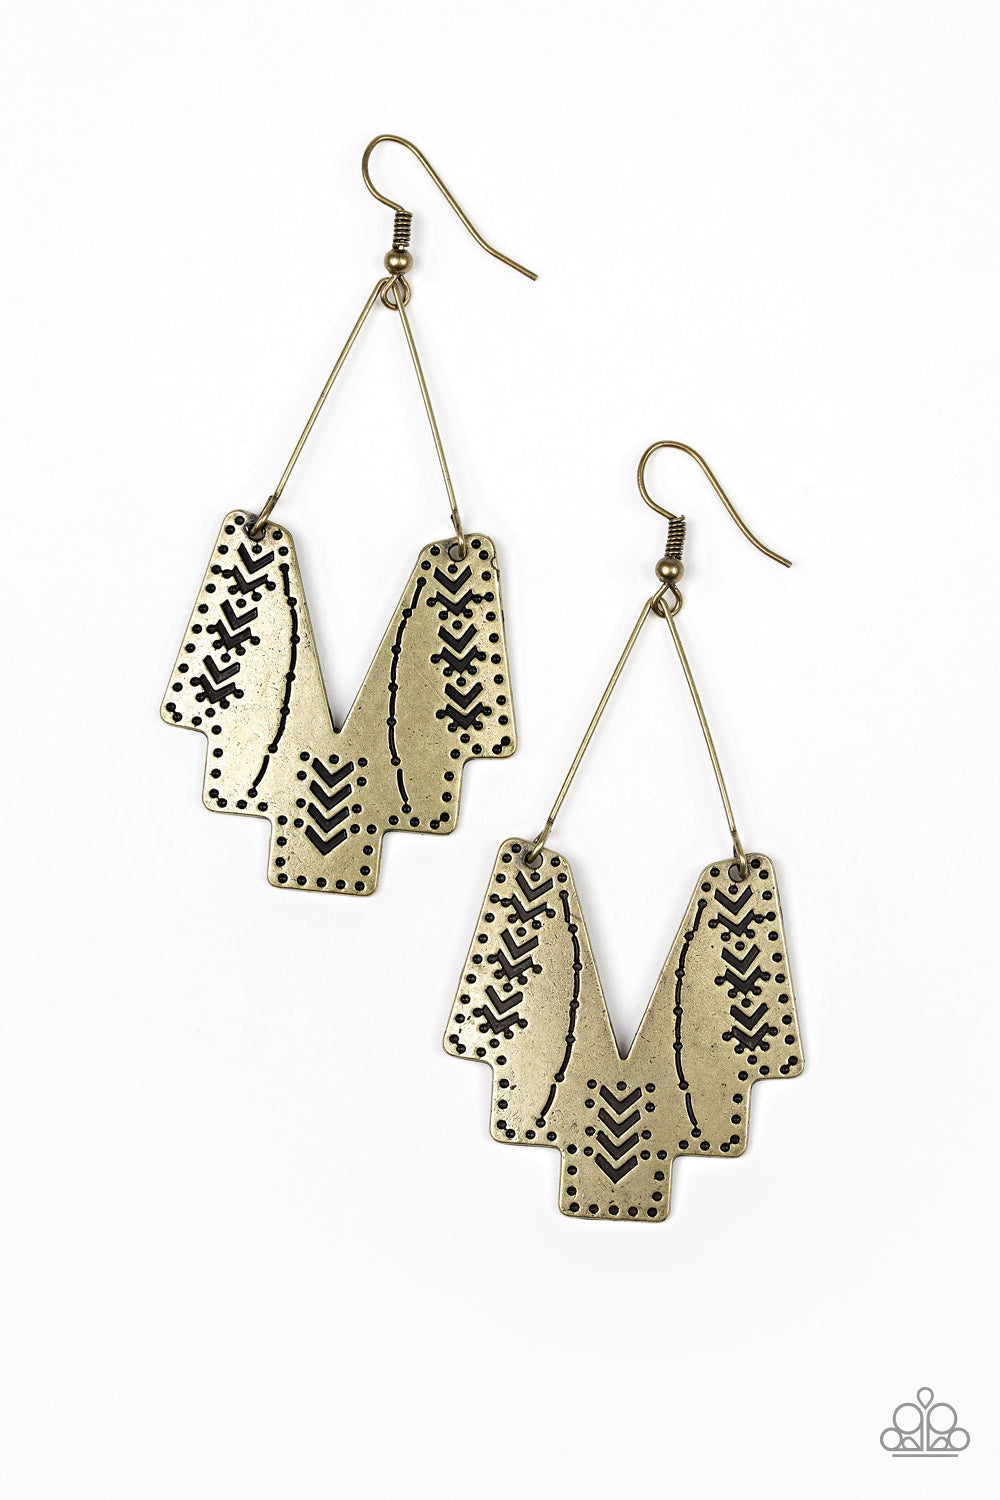 Paparazzi Earrings - Arizona Adobe - Brass